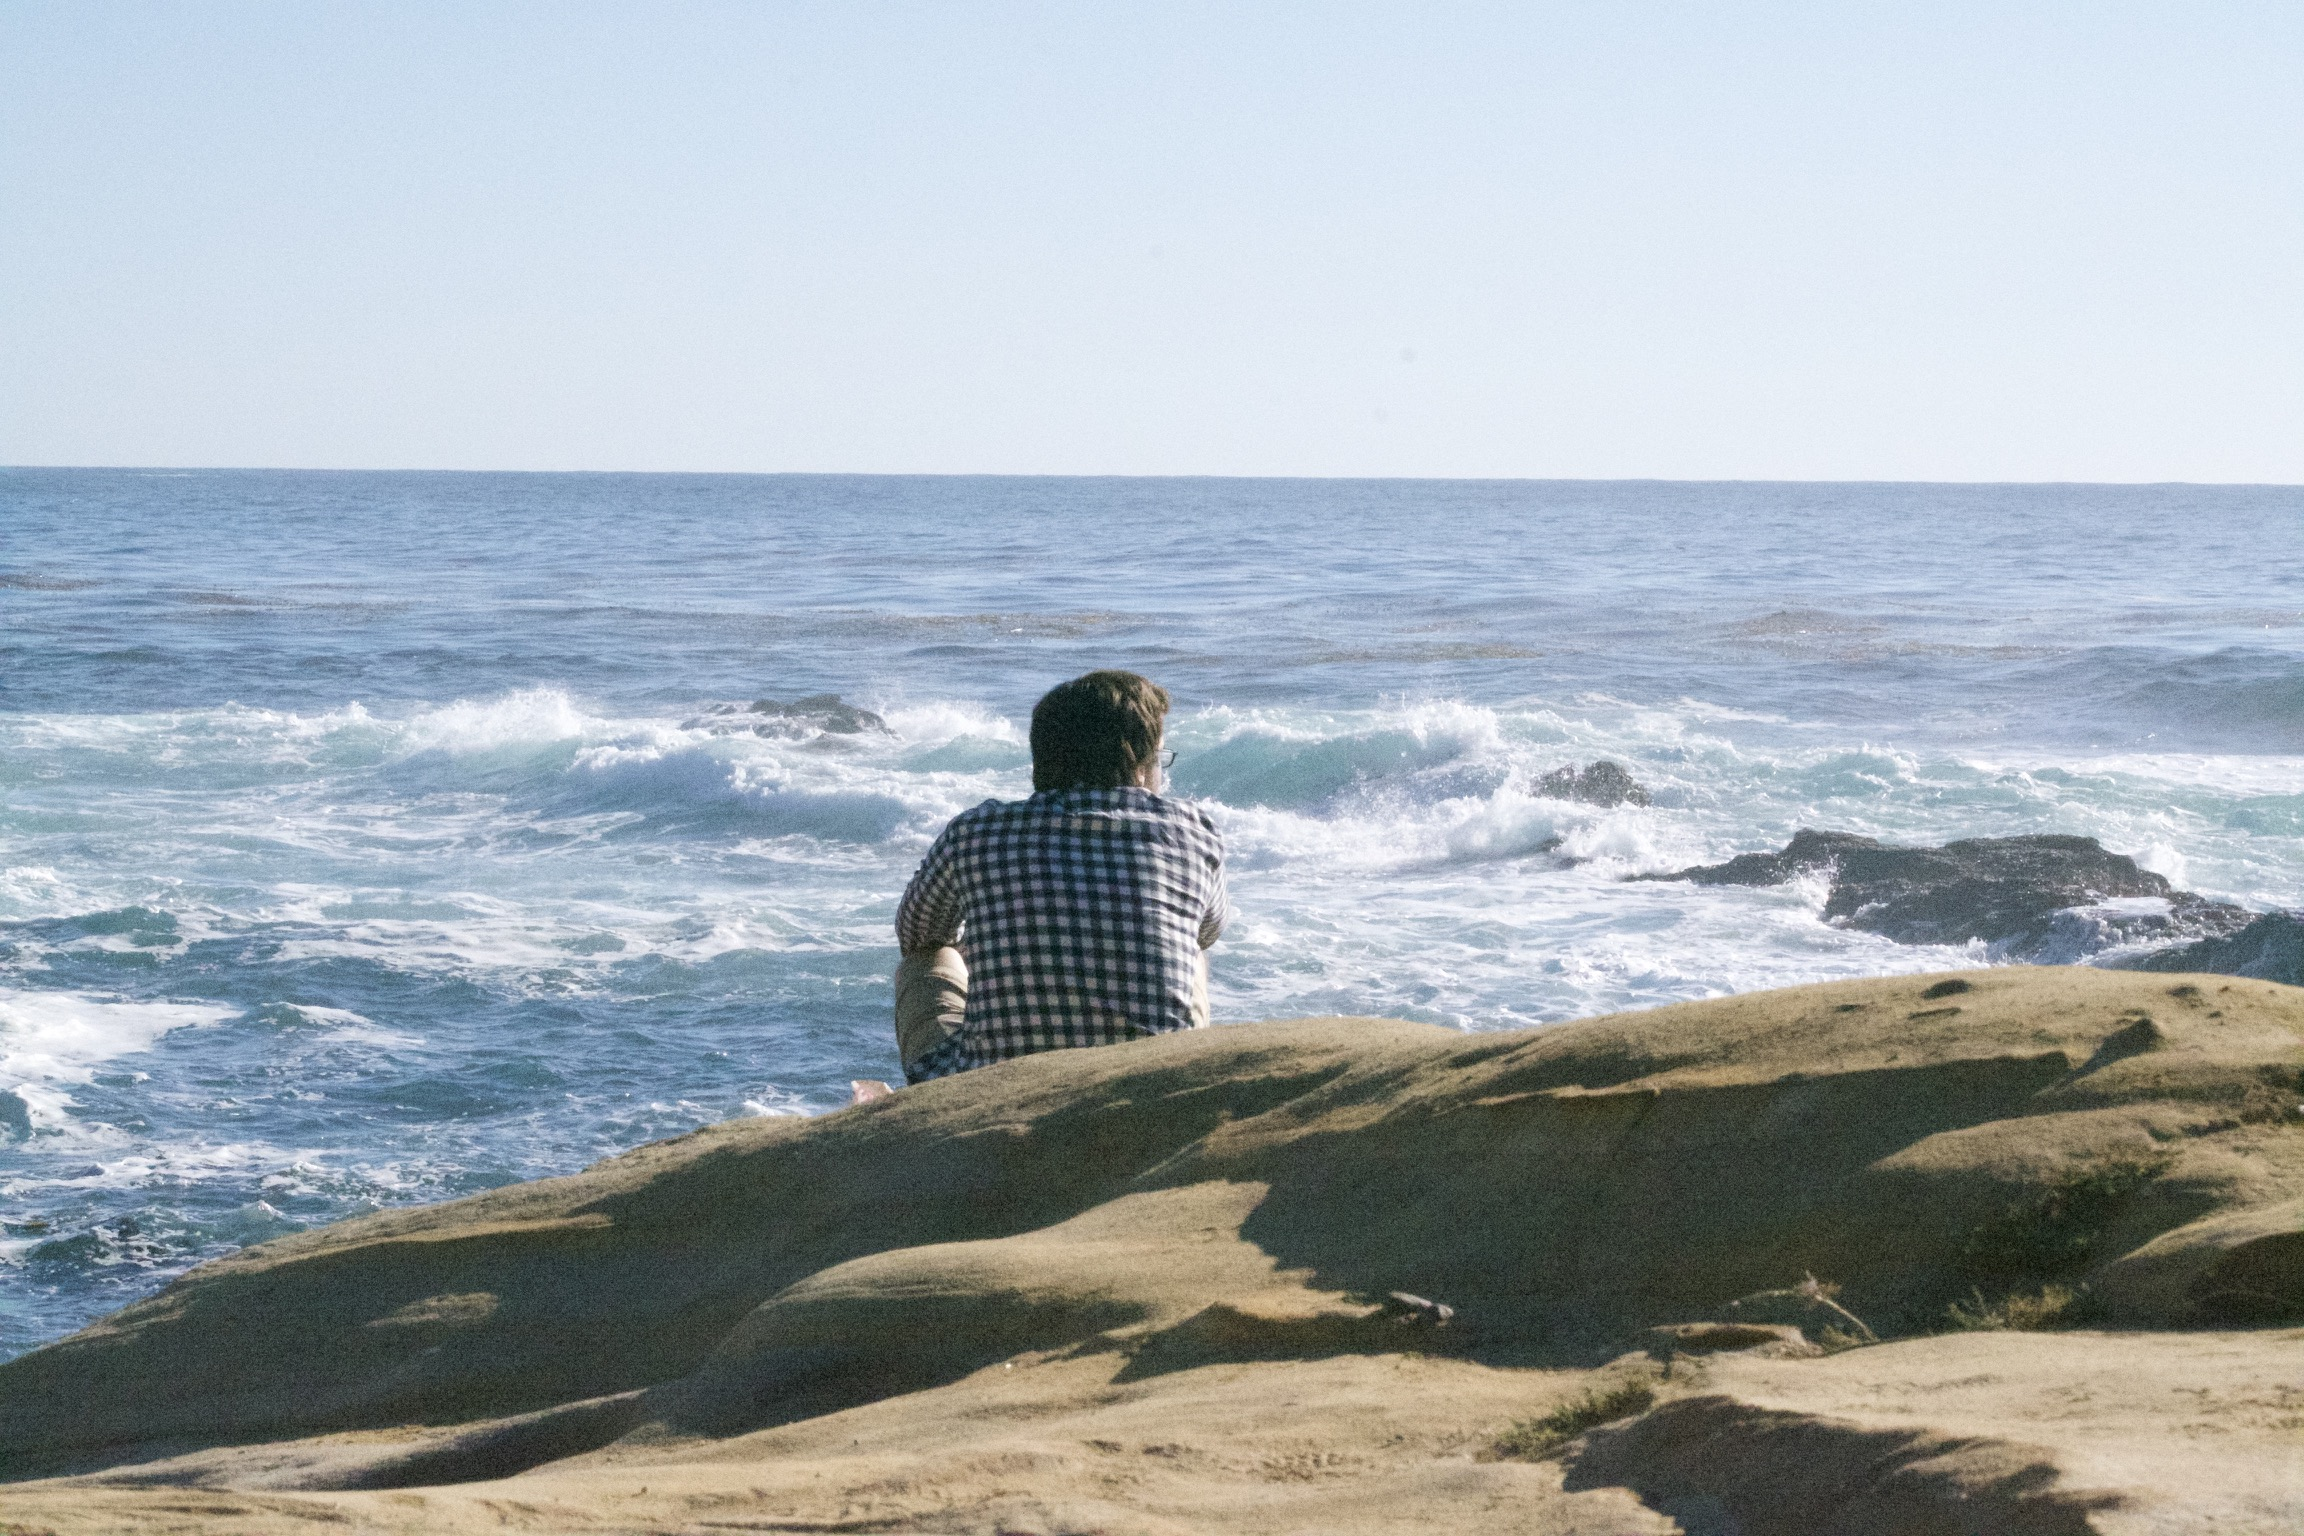 A man sits on rocky ground, looking at the ocean.